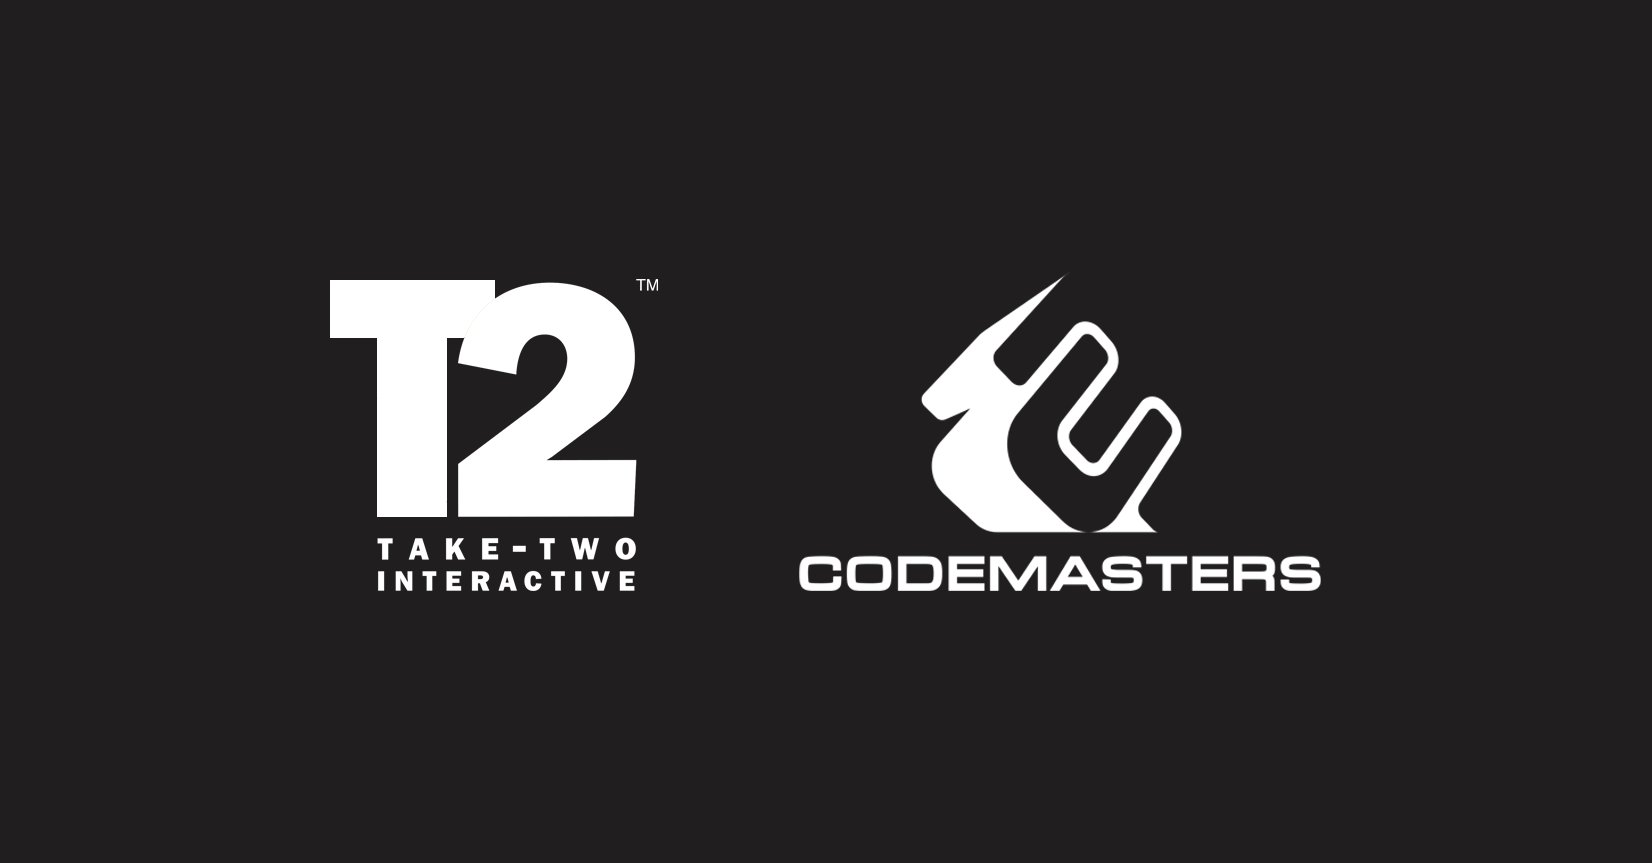 Take-Two / Codemasters